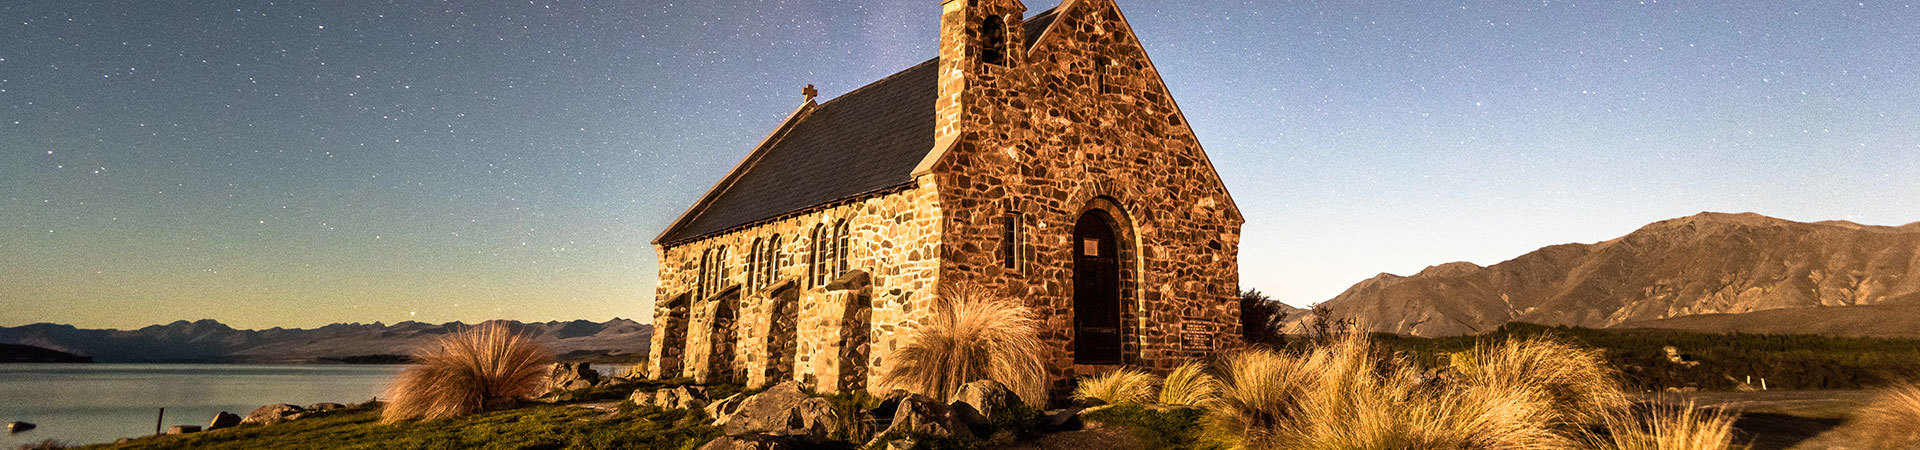 The Church of the Good Shepherd, Mt Cook National Park